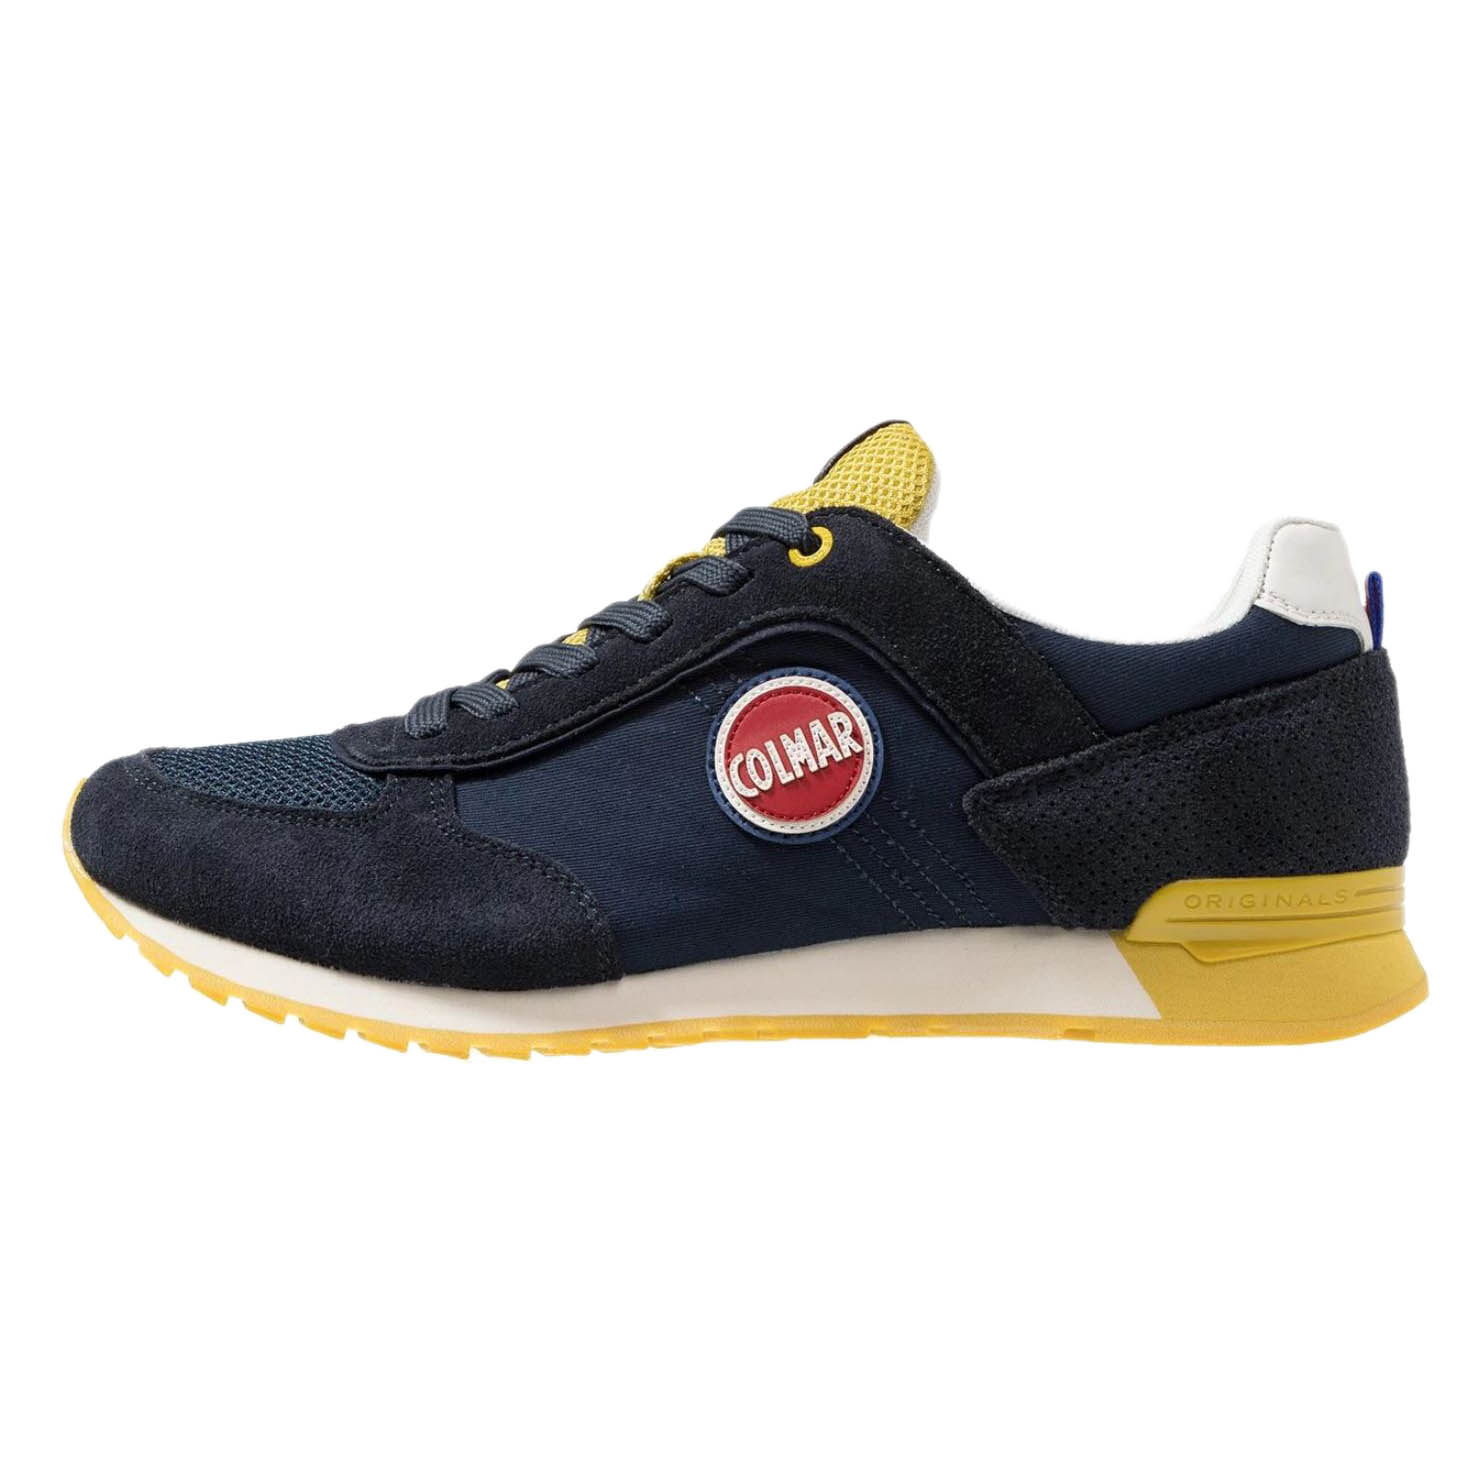 COLMAR ORIGINALS TRAVIS COLORS 013 NAVY-YELLOW CLM